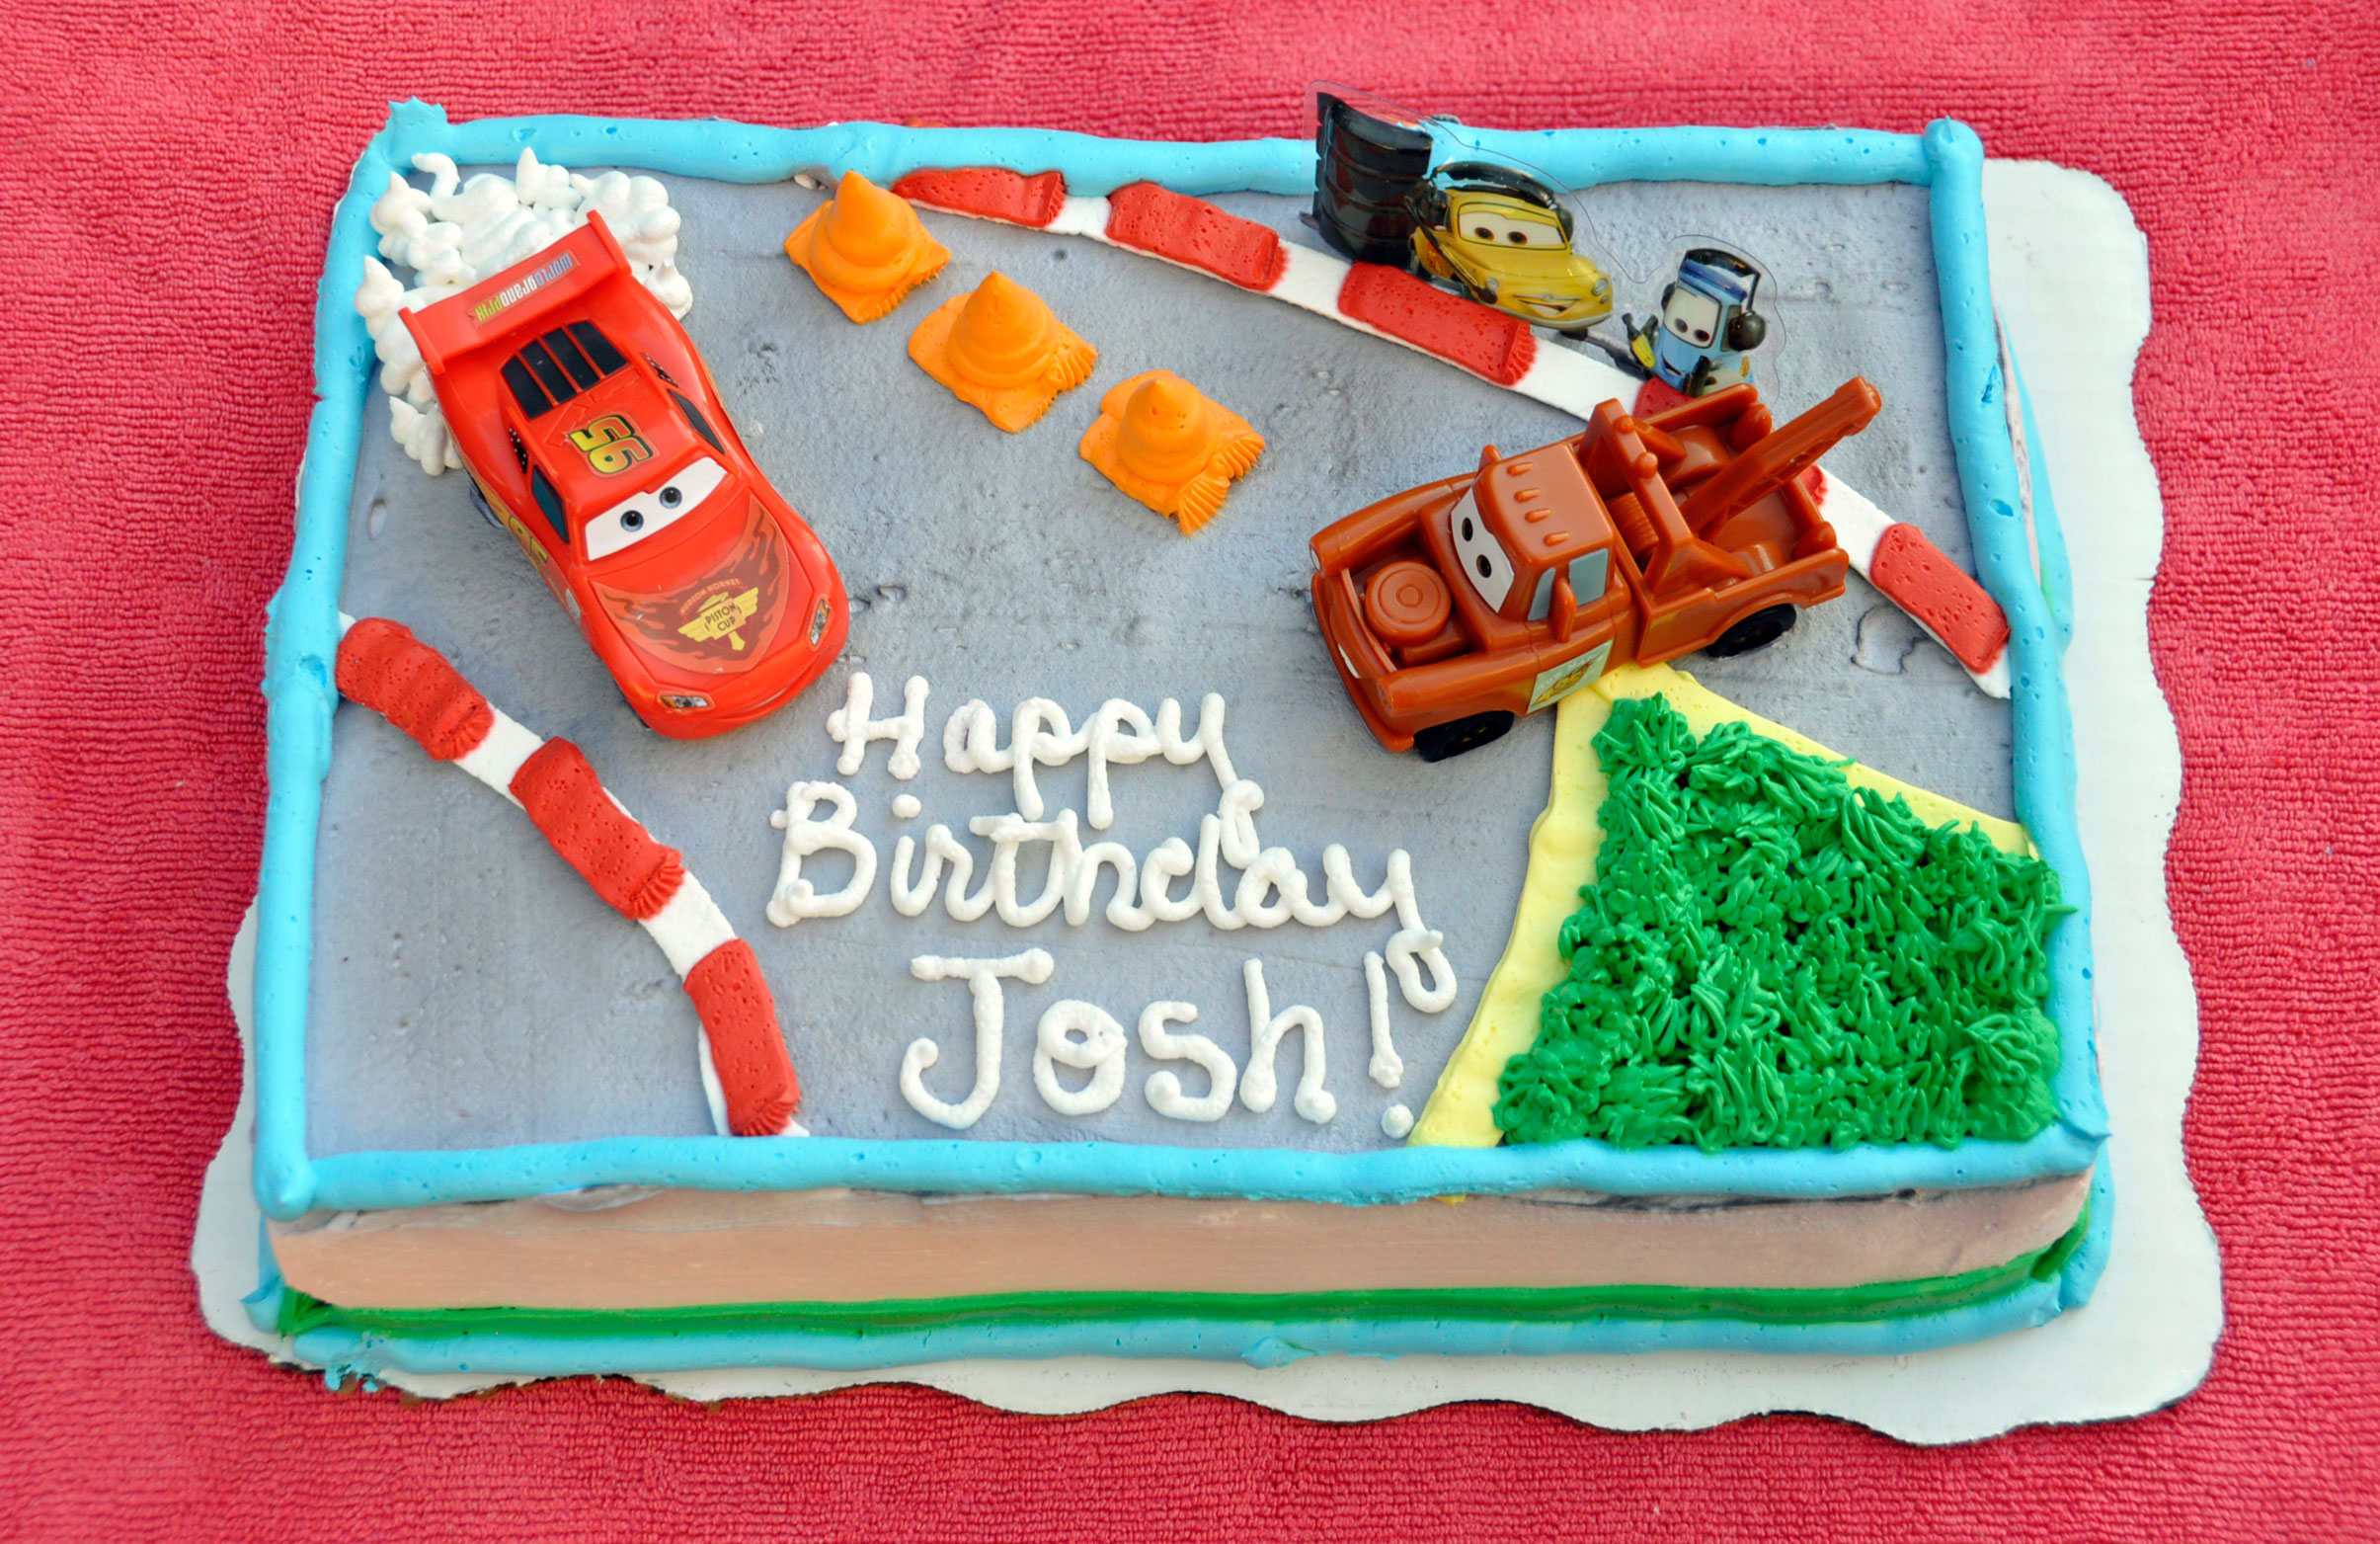 Swell Pixar Cars Themed Custom Cake Personalised Birthday Cards Paralily Jamesorg